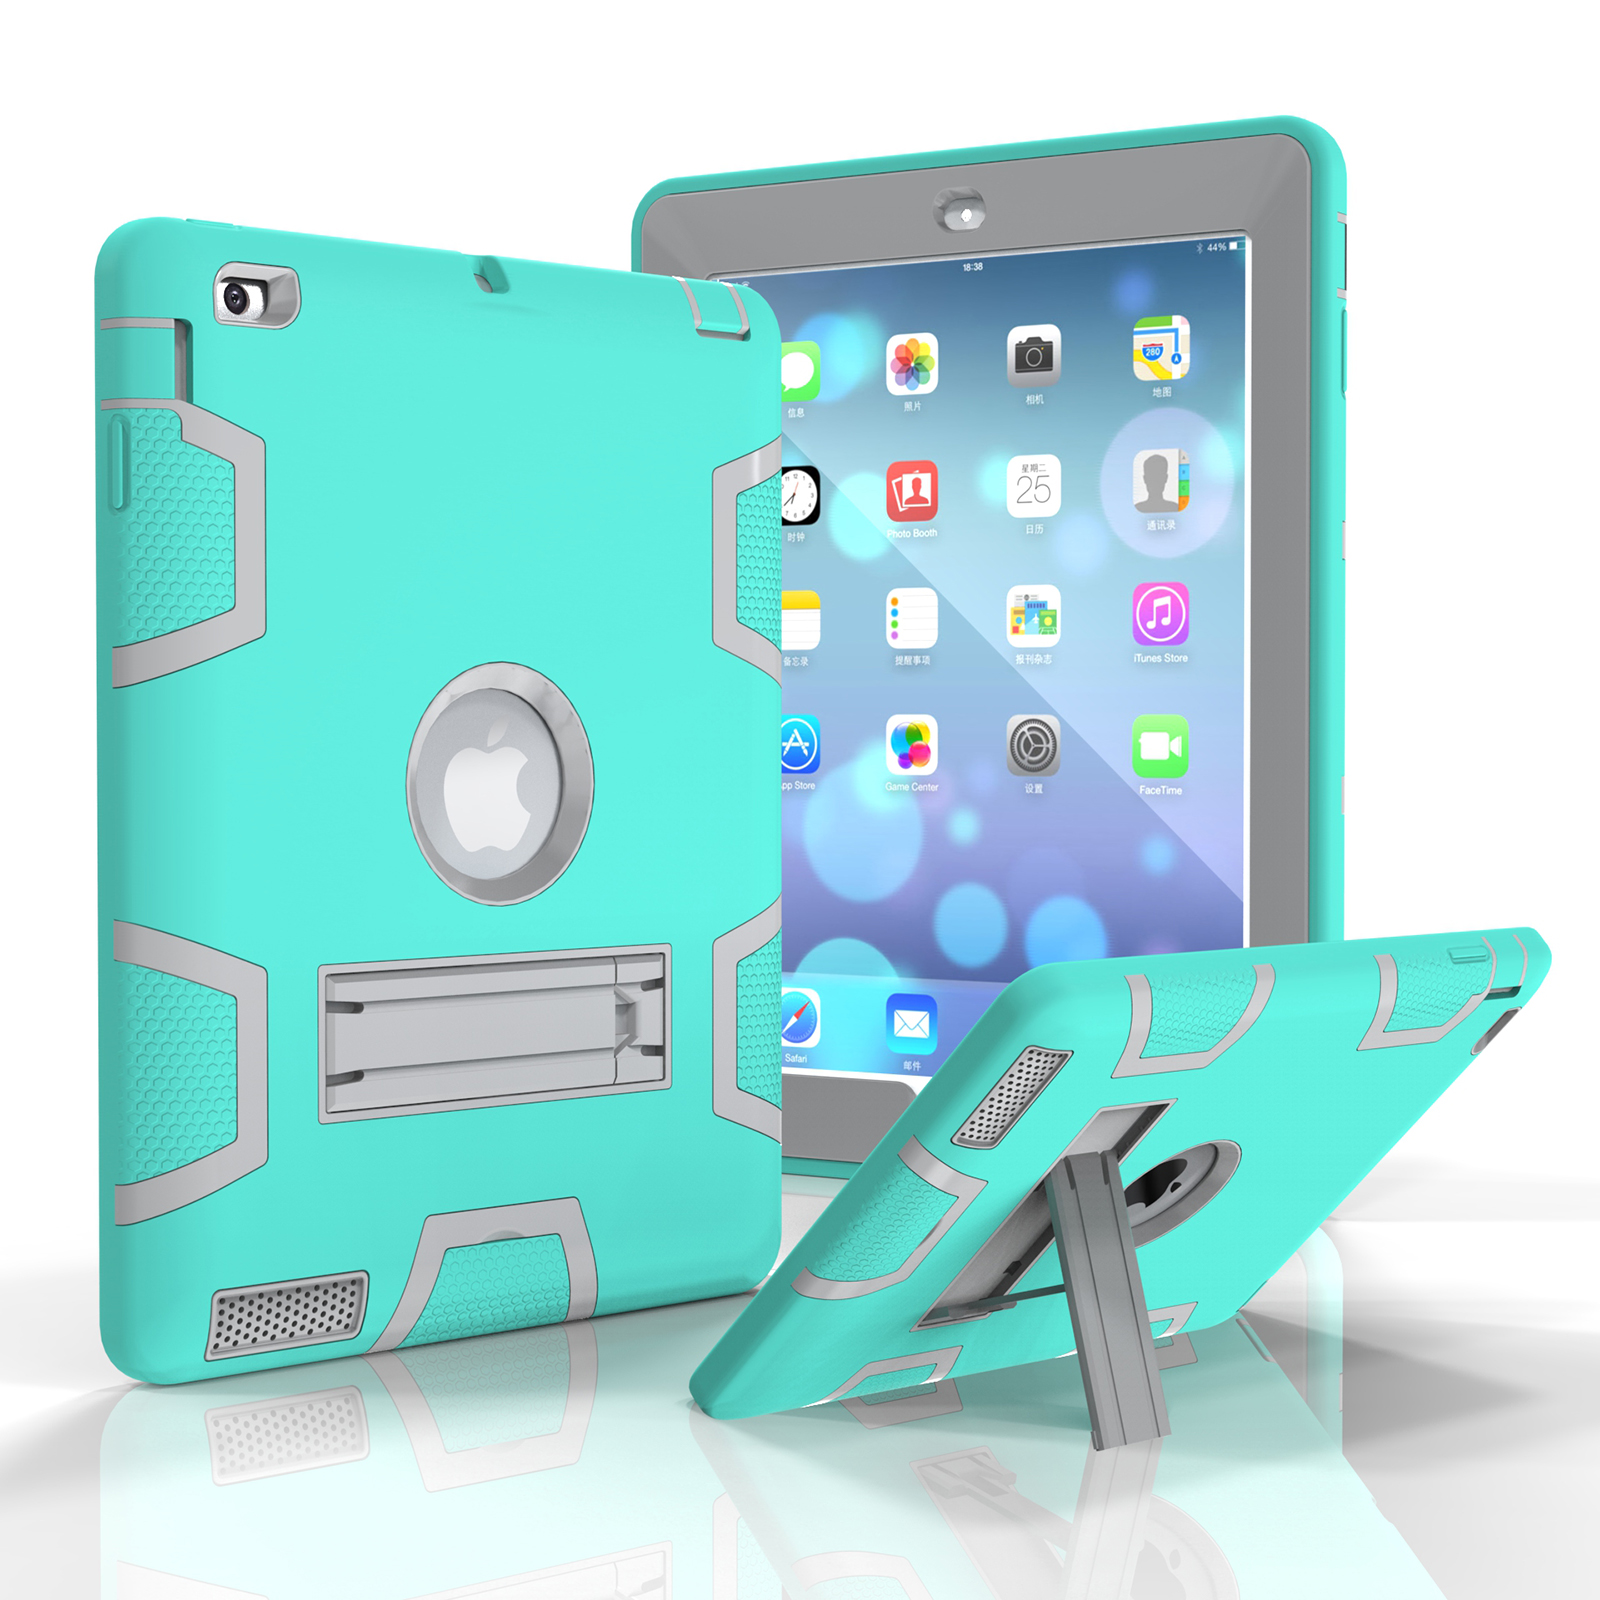 """iPad 2nd / 3rd/ 4th Gen 9.7"""" Case, Goodest Three Layer Silicone PC Full Body Protective Shockproof Stand Armor Defender Drop Proof Kids Toddler Friendly Cover for Apple iPad 2 3 4, Offwhite+Skyblue"""